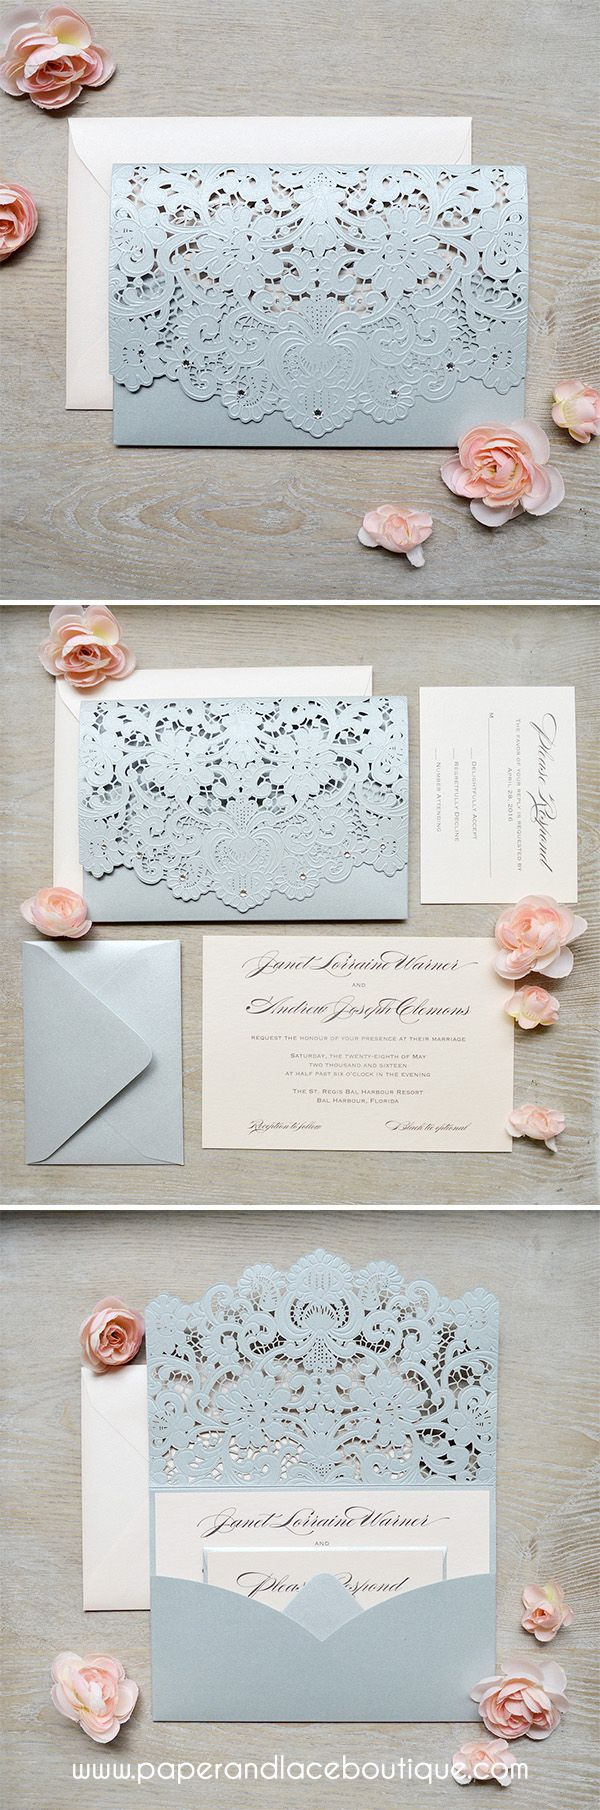 Best 25 laser cut invitation ideas on pinterest laser cut bride to be reading silver and blush laser cut wedding invitations hints of blue monicamarmolfo Gallery